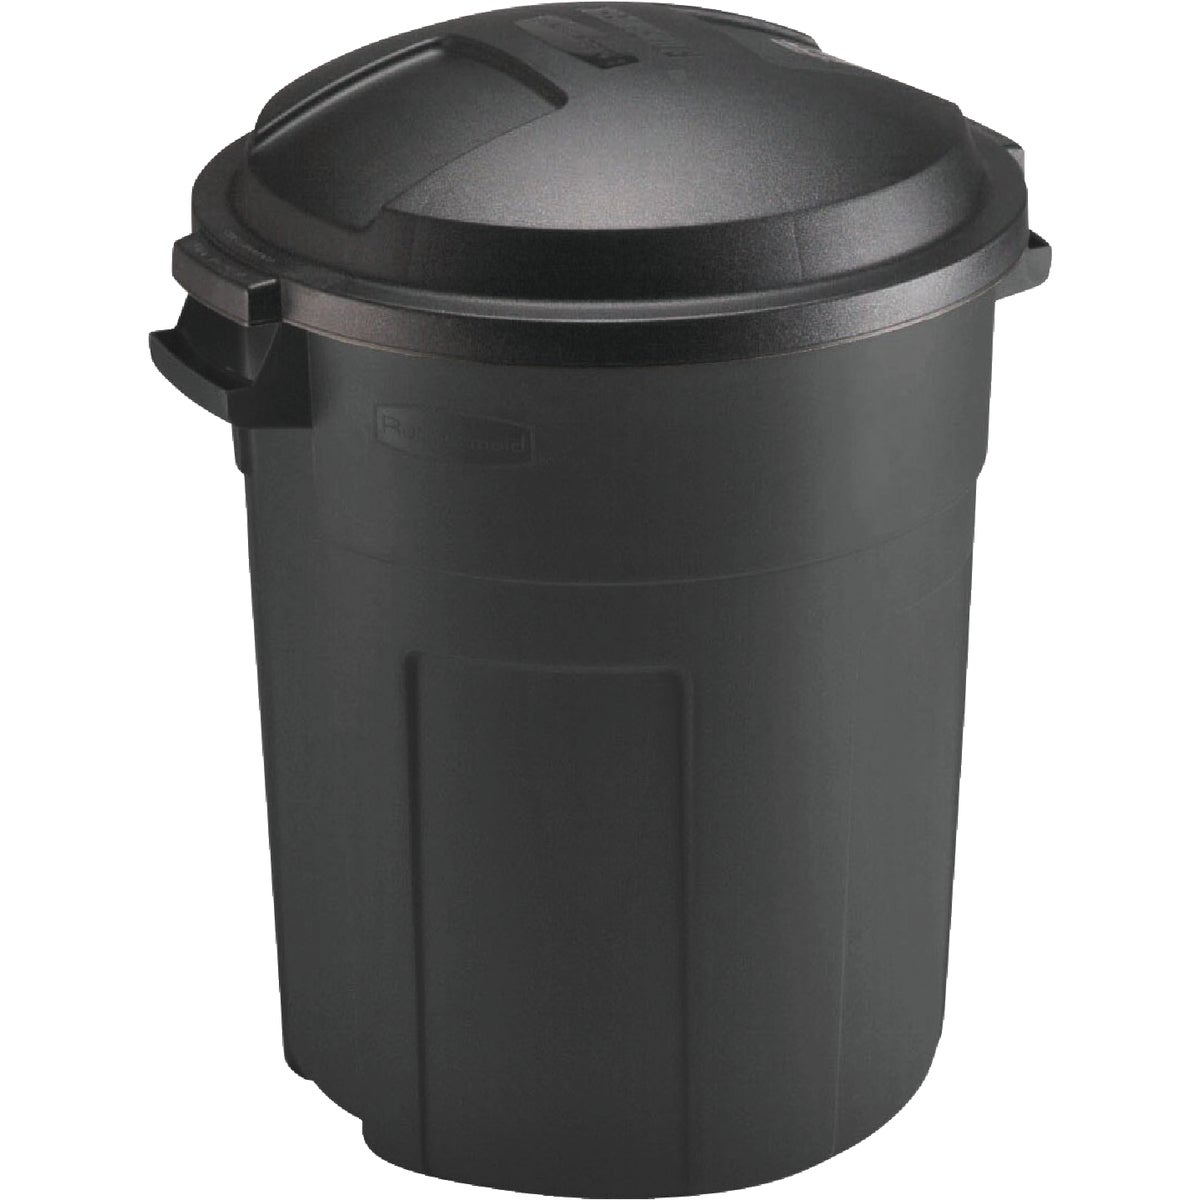 20GAL BLACK TRASH CAN - 289200BLA by Rubbermaid Home